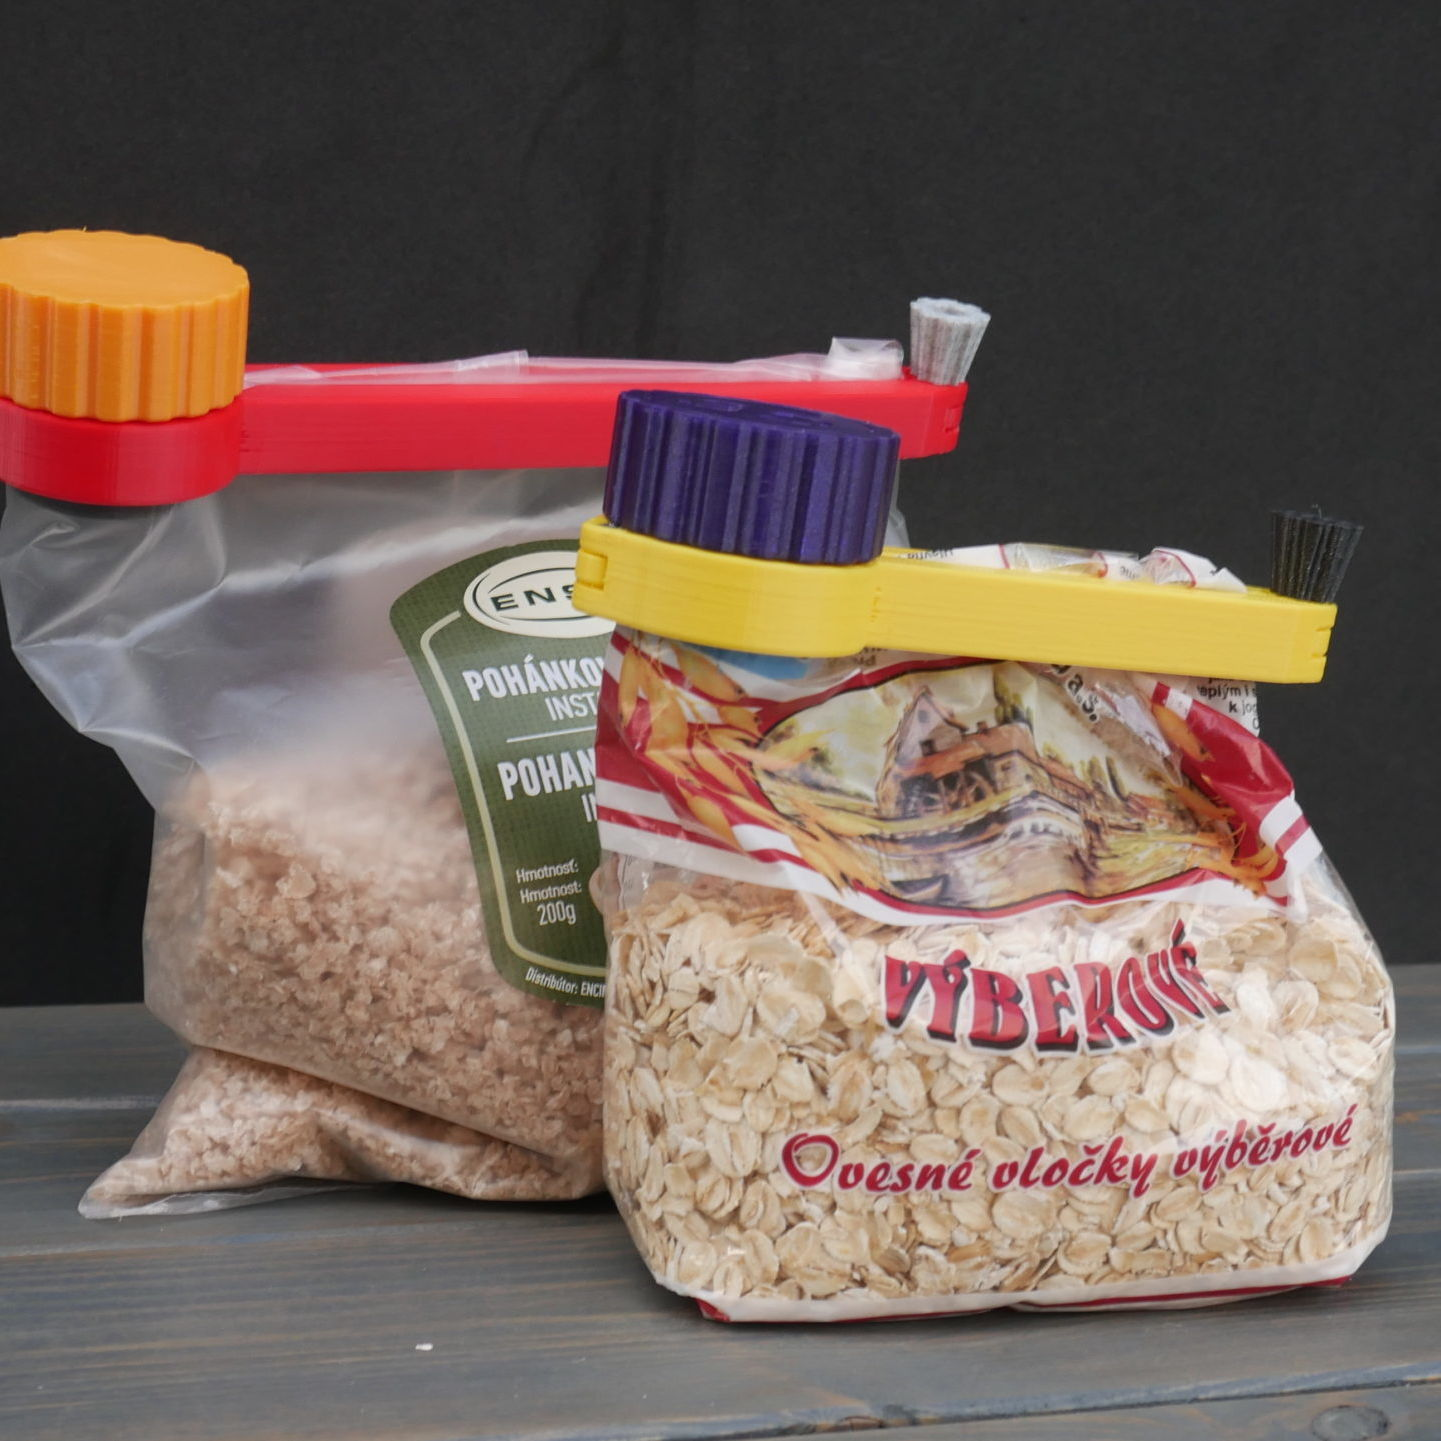 clever bag clips with dispenser